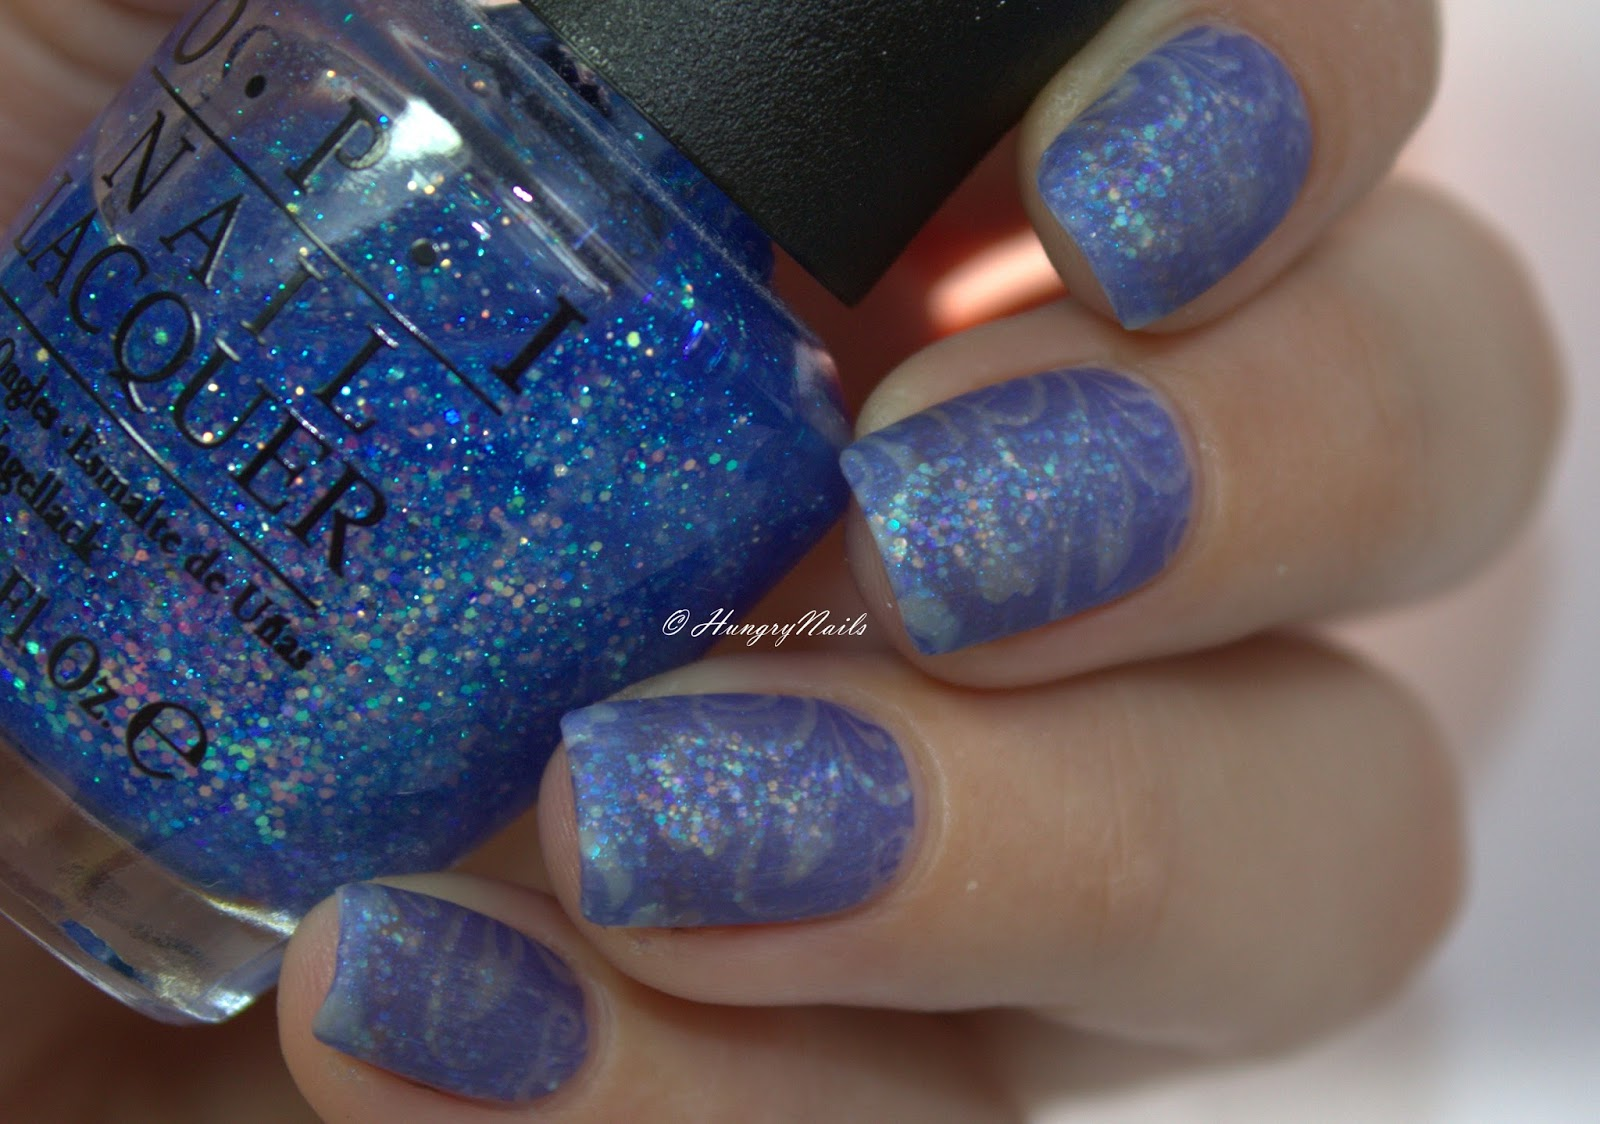 http://hungrynails.blogspot.de/2016/06/blue-friday-spezial-glitzernagel-mit-opi.html